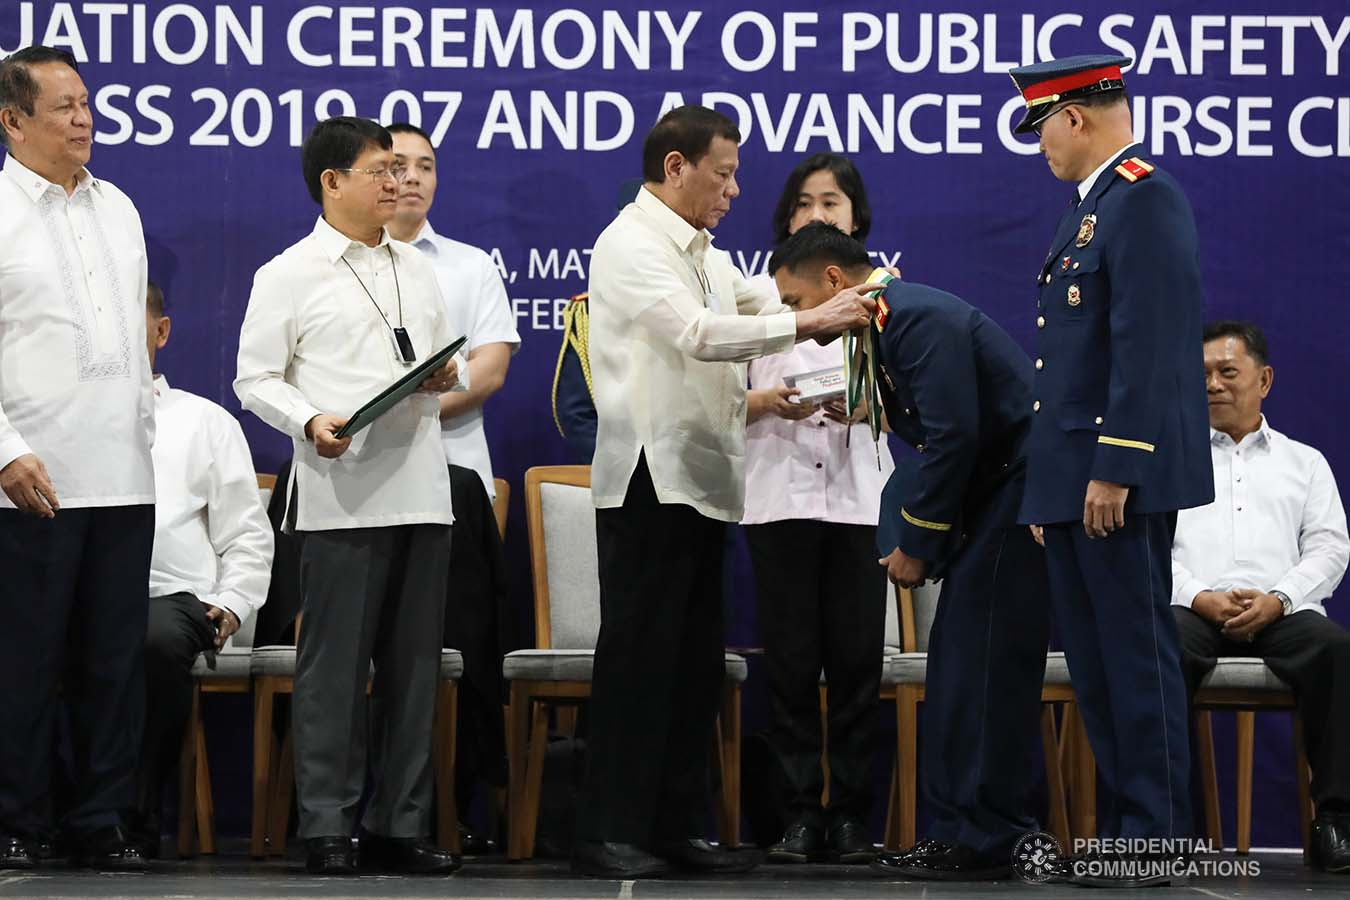 President Rodrigo Roa Duterte confers a medal to one of the awardees during the joint graduation ceremony of Public Safety Officers Basic Course Class 2019-07 and Advance Course Class 2019-18 at the Arcadia Active Lifestyle Center in Davao City on February 20, 2020. TOTO LOZANO/PRESIDENTIAL PHOTO